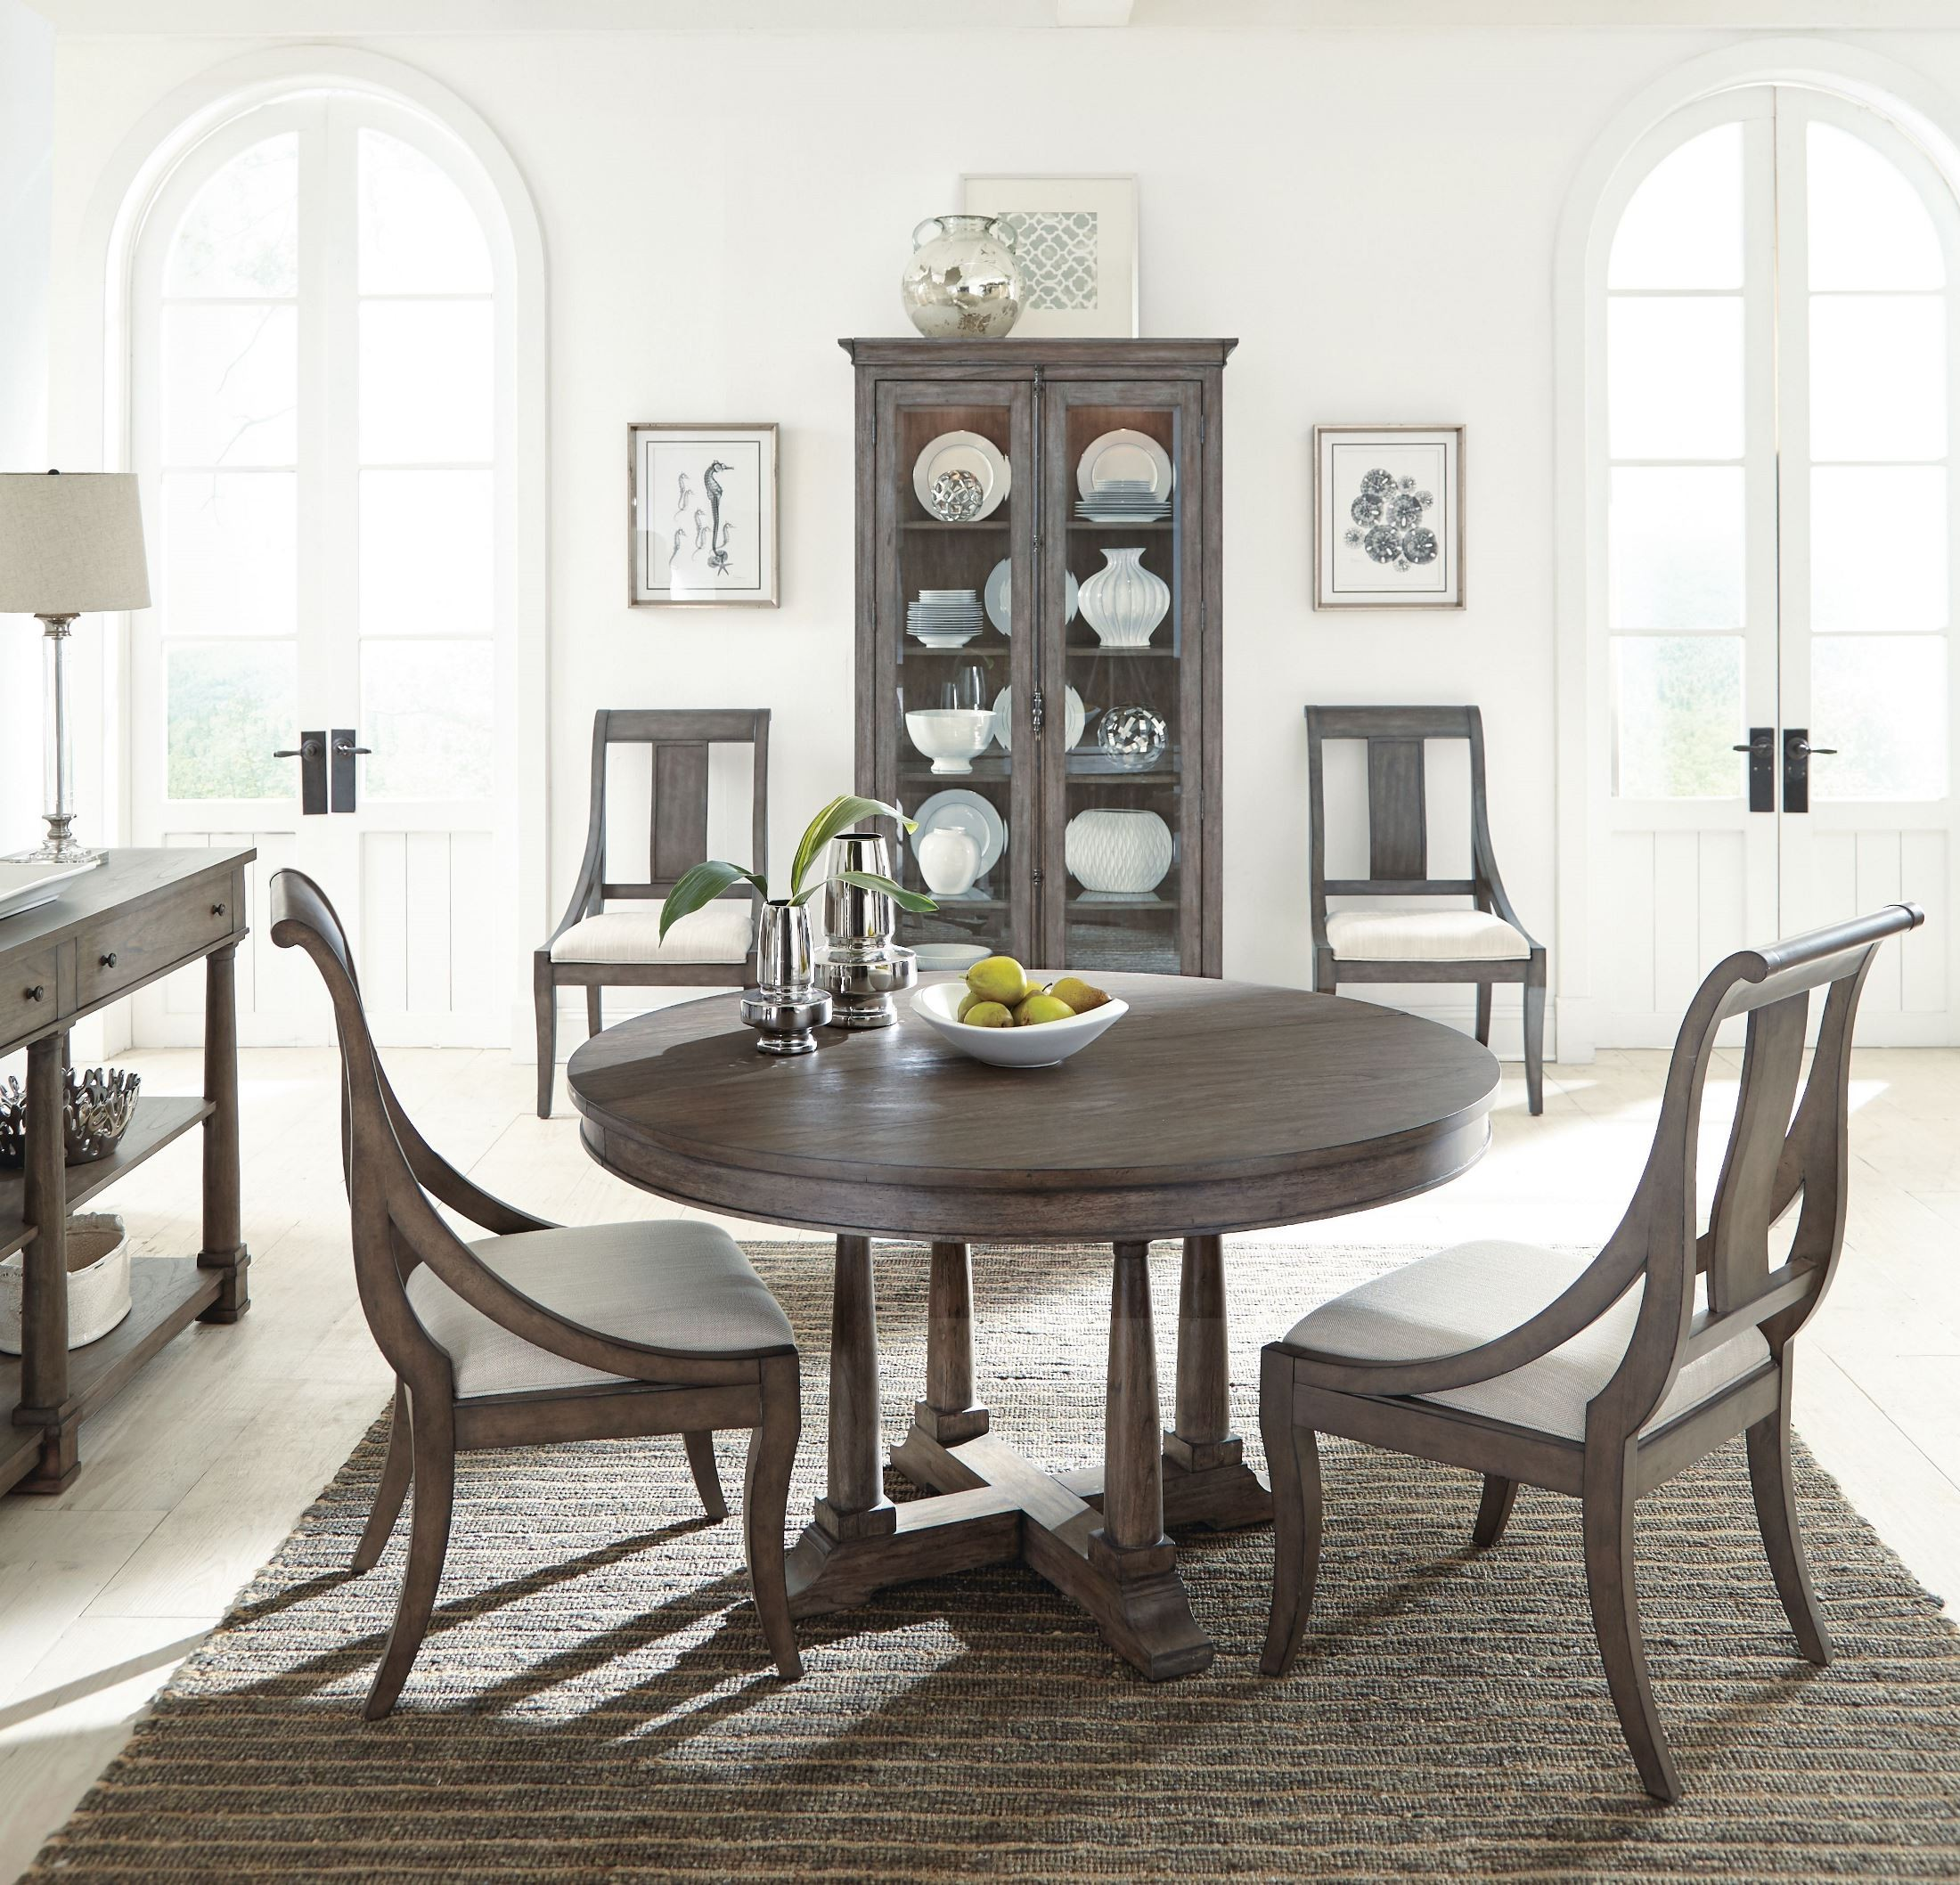 Round Dining Room Sets For 6: Lincoln Park Gray Extendable Round Dining Room Set From